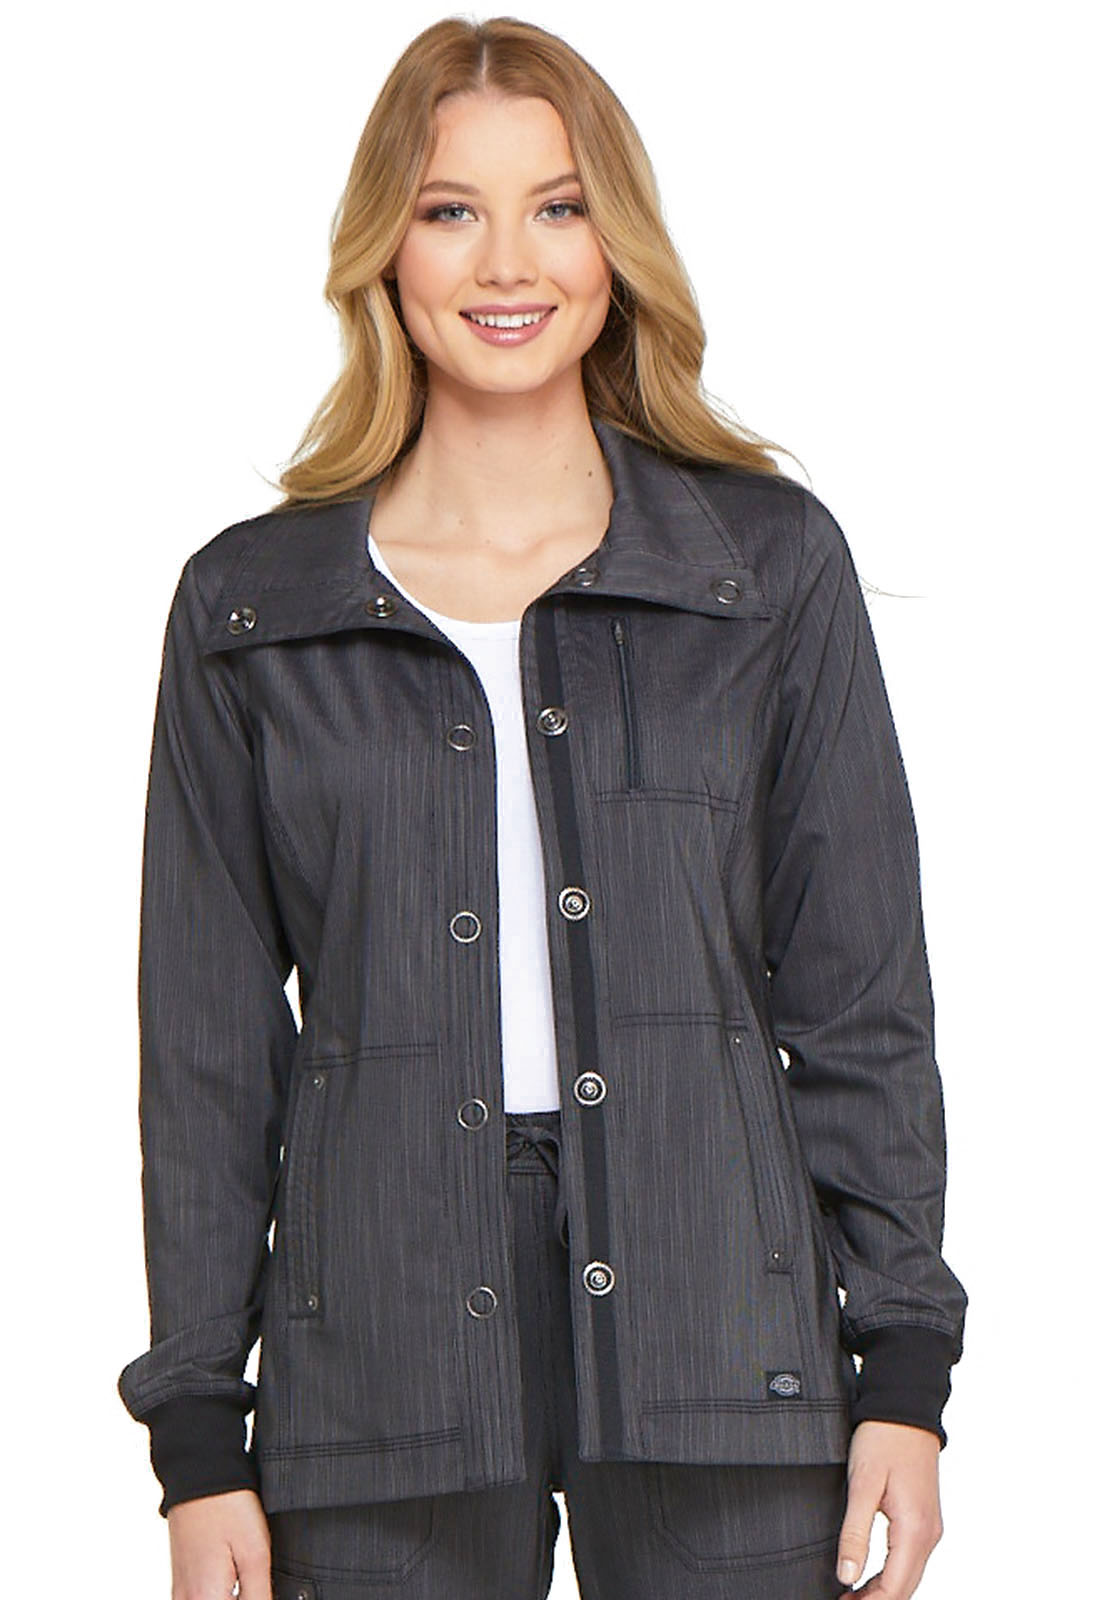 12fe74c76b2 Advance Snap Front Jacket in Onyx Twist DK325-ONXT from Scrubs Express